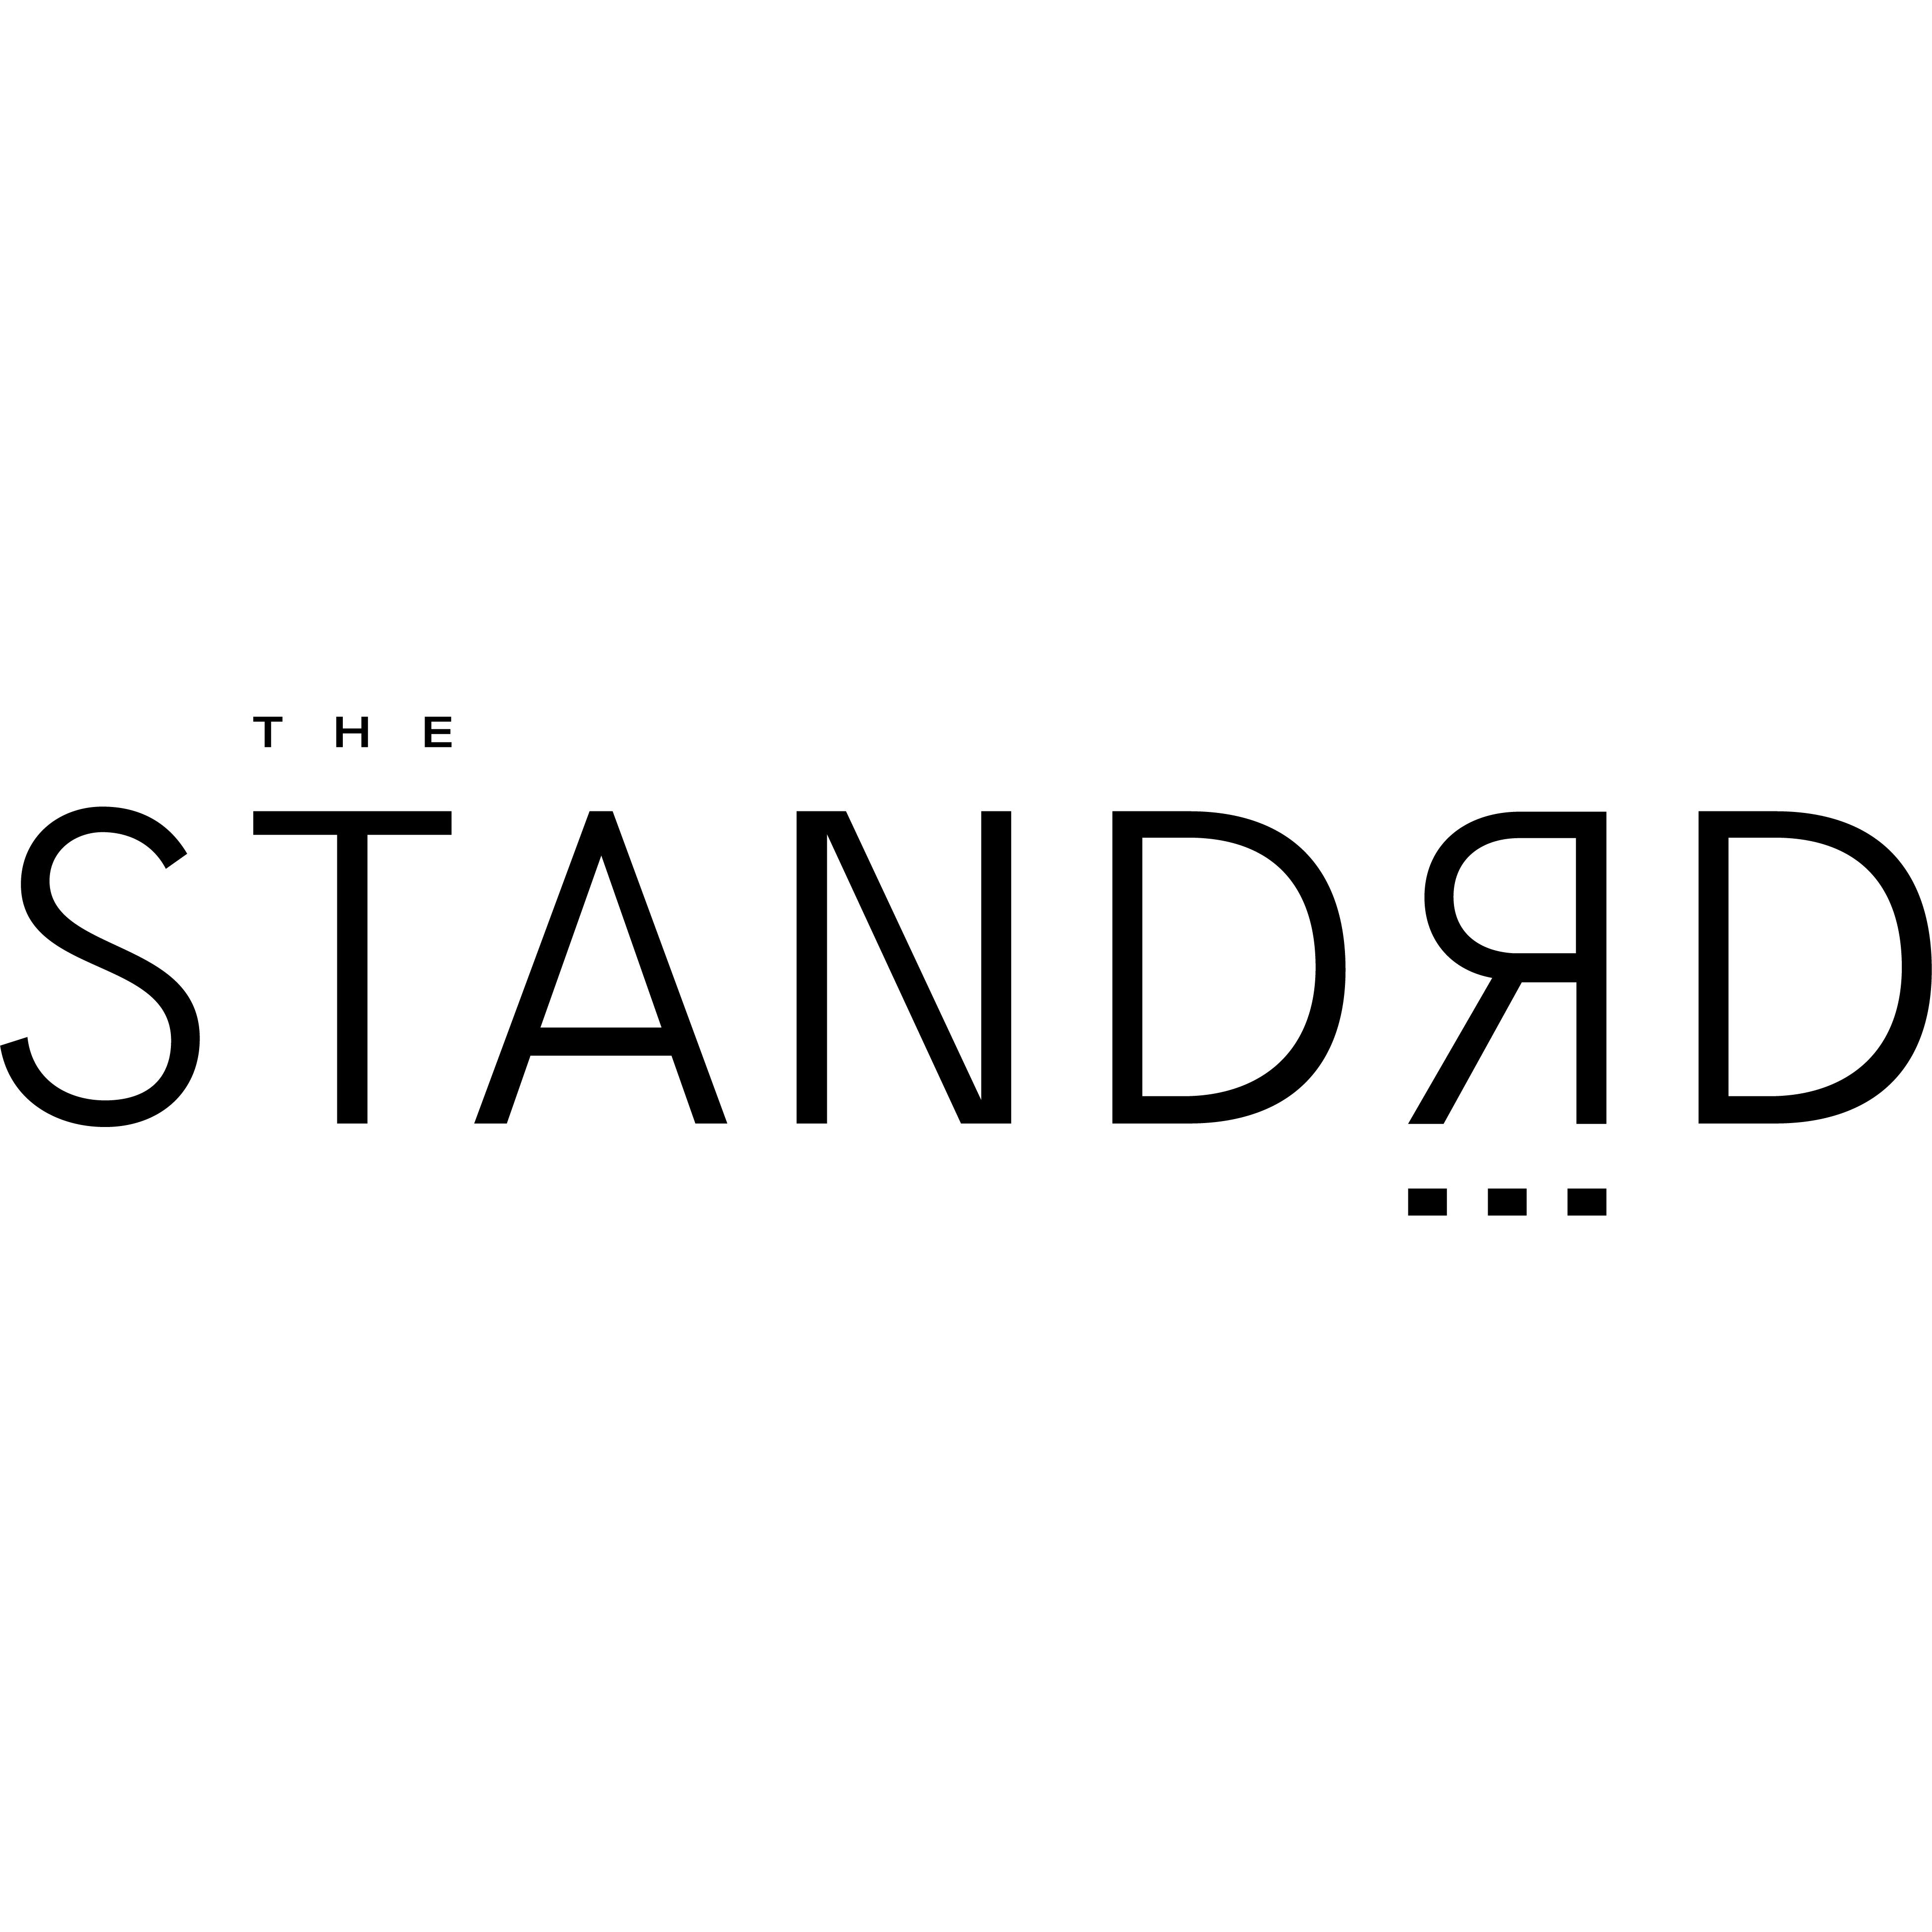 The Standrd - Menifee, CA - Farms, Orchards & Ranches